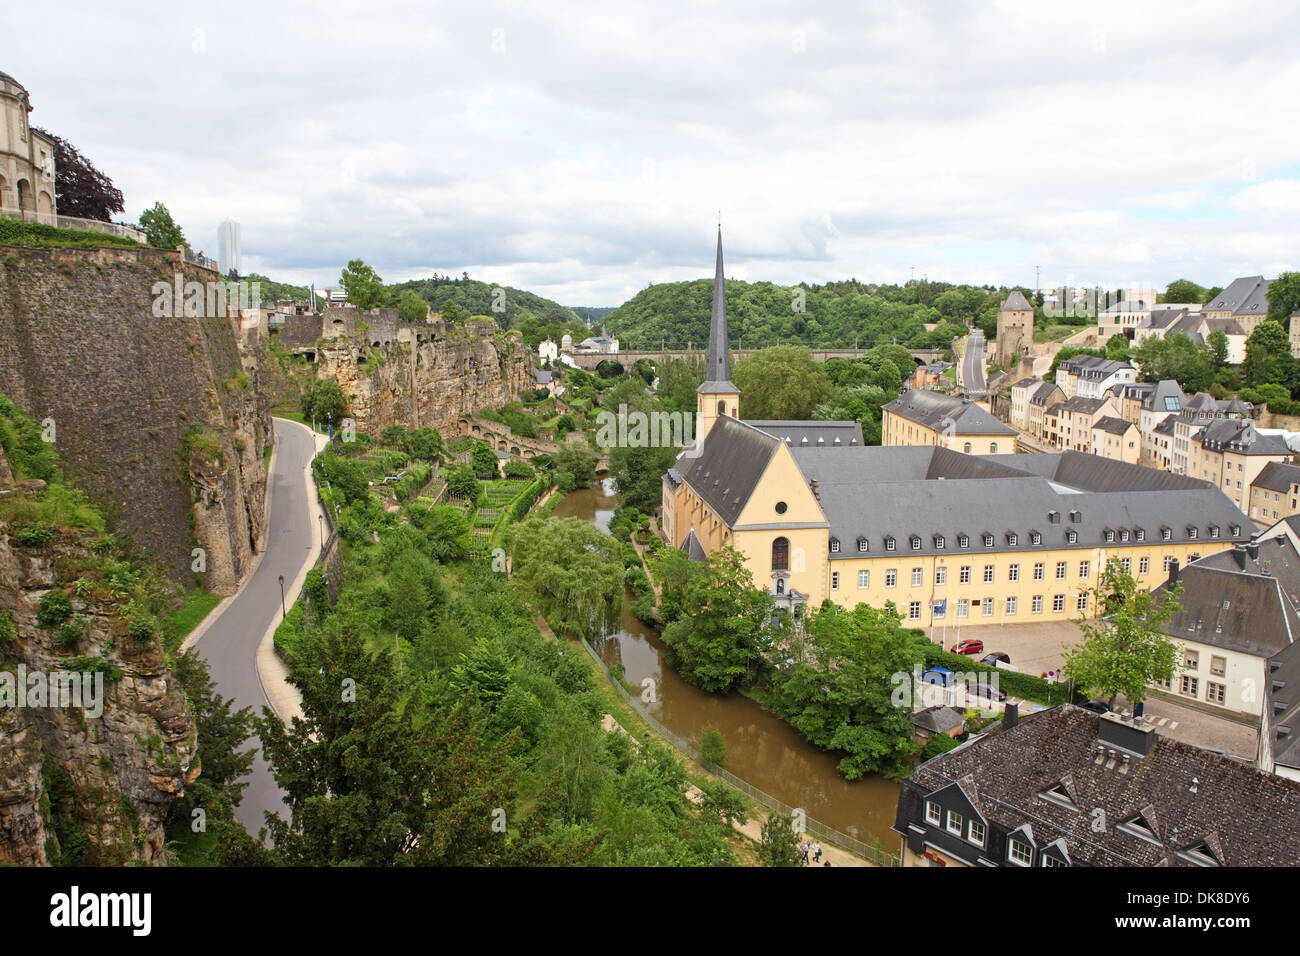 The Bock Casemates overlooking the Grund district of Luxembourg. The fortifications were built by Austrian engineers in 1745. - Stock Image